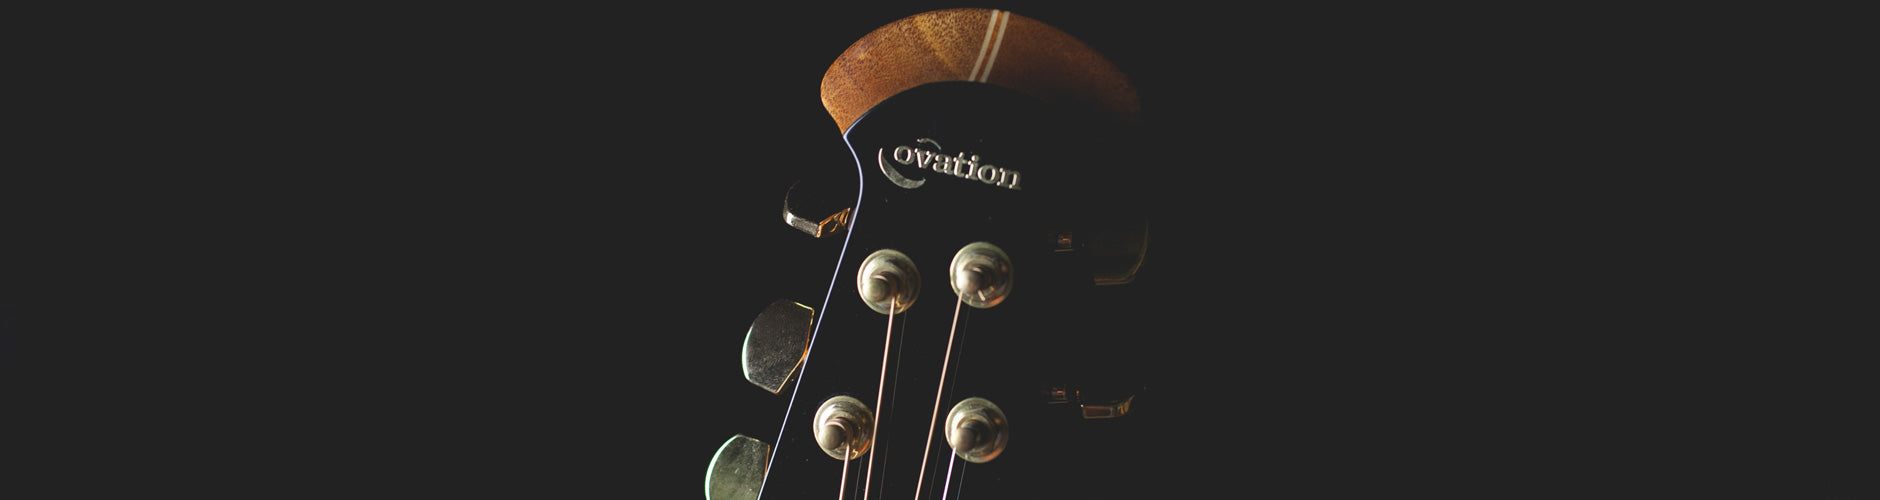 Ovation Guitars At the Music Zoo